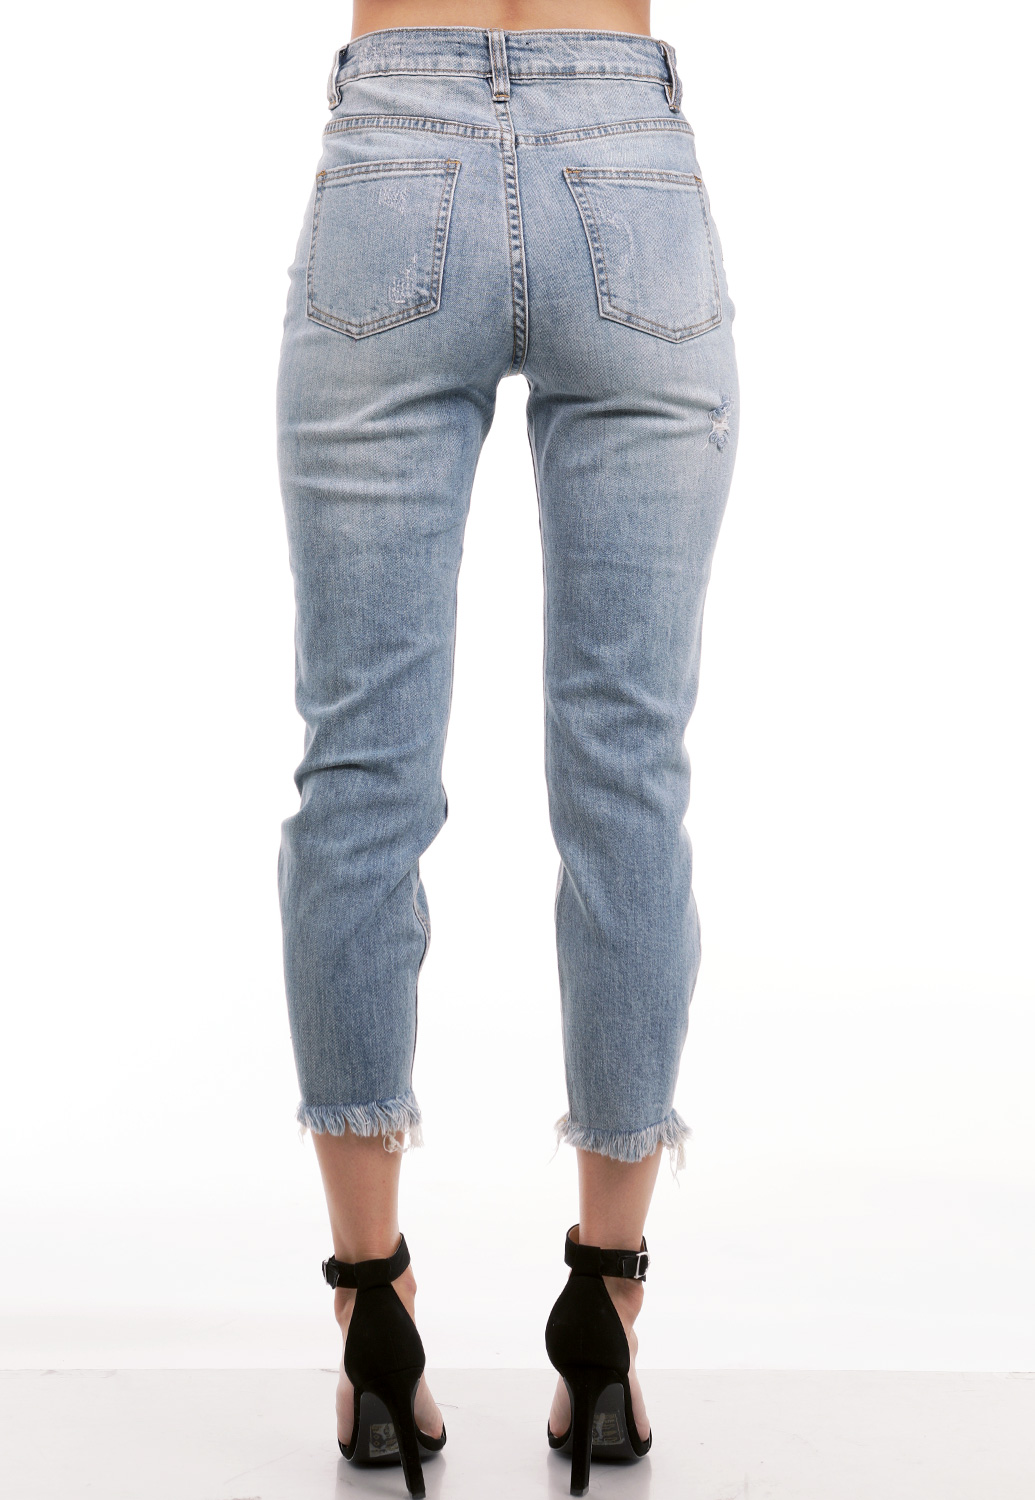 Distressed Denim High Rise Jeans